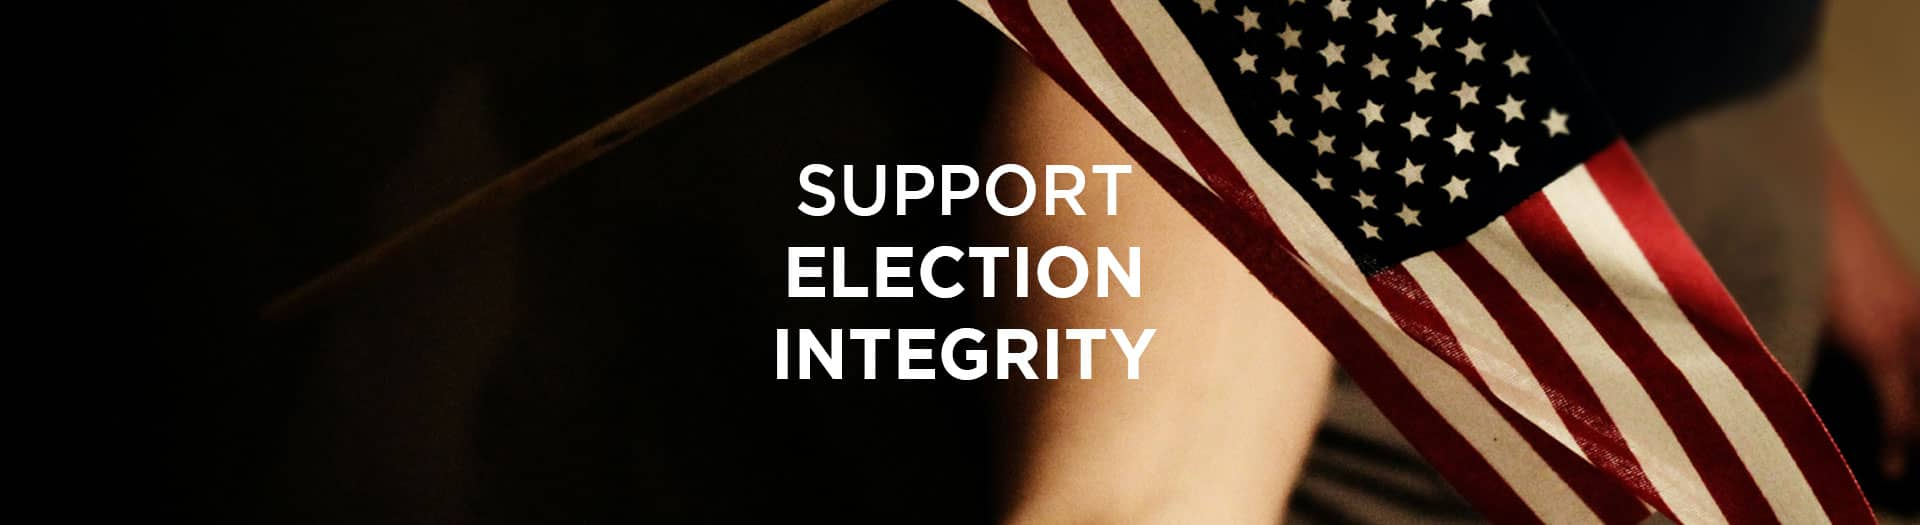 support election integrity